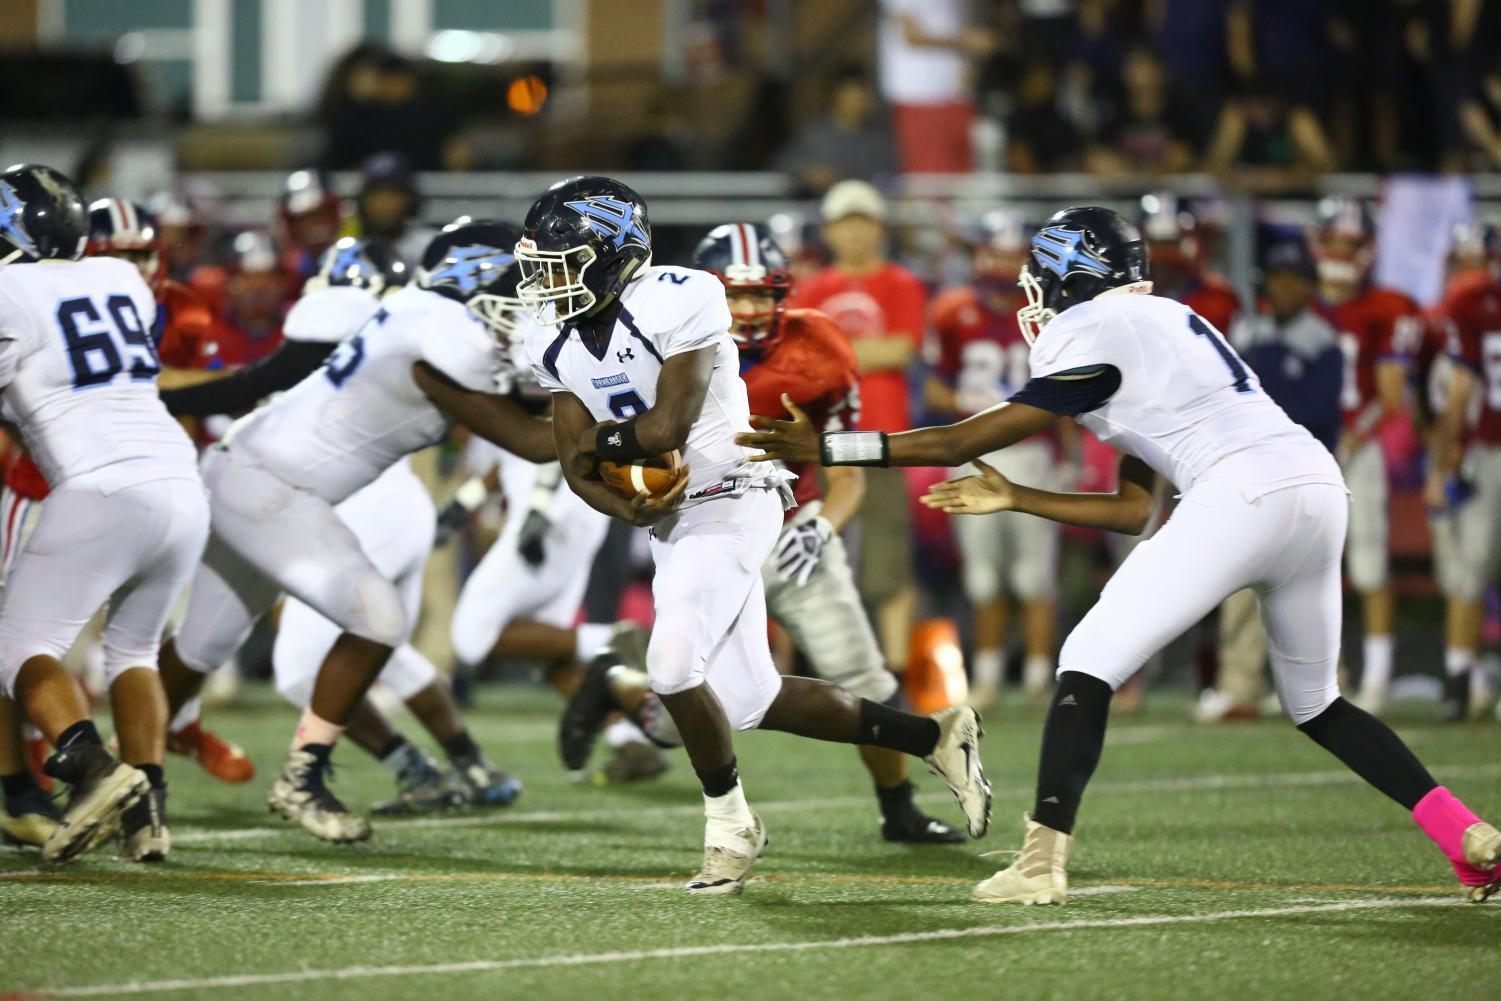 The Springbrook Blue Devils face the Wootton Patriots.